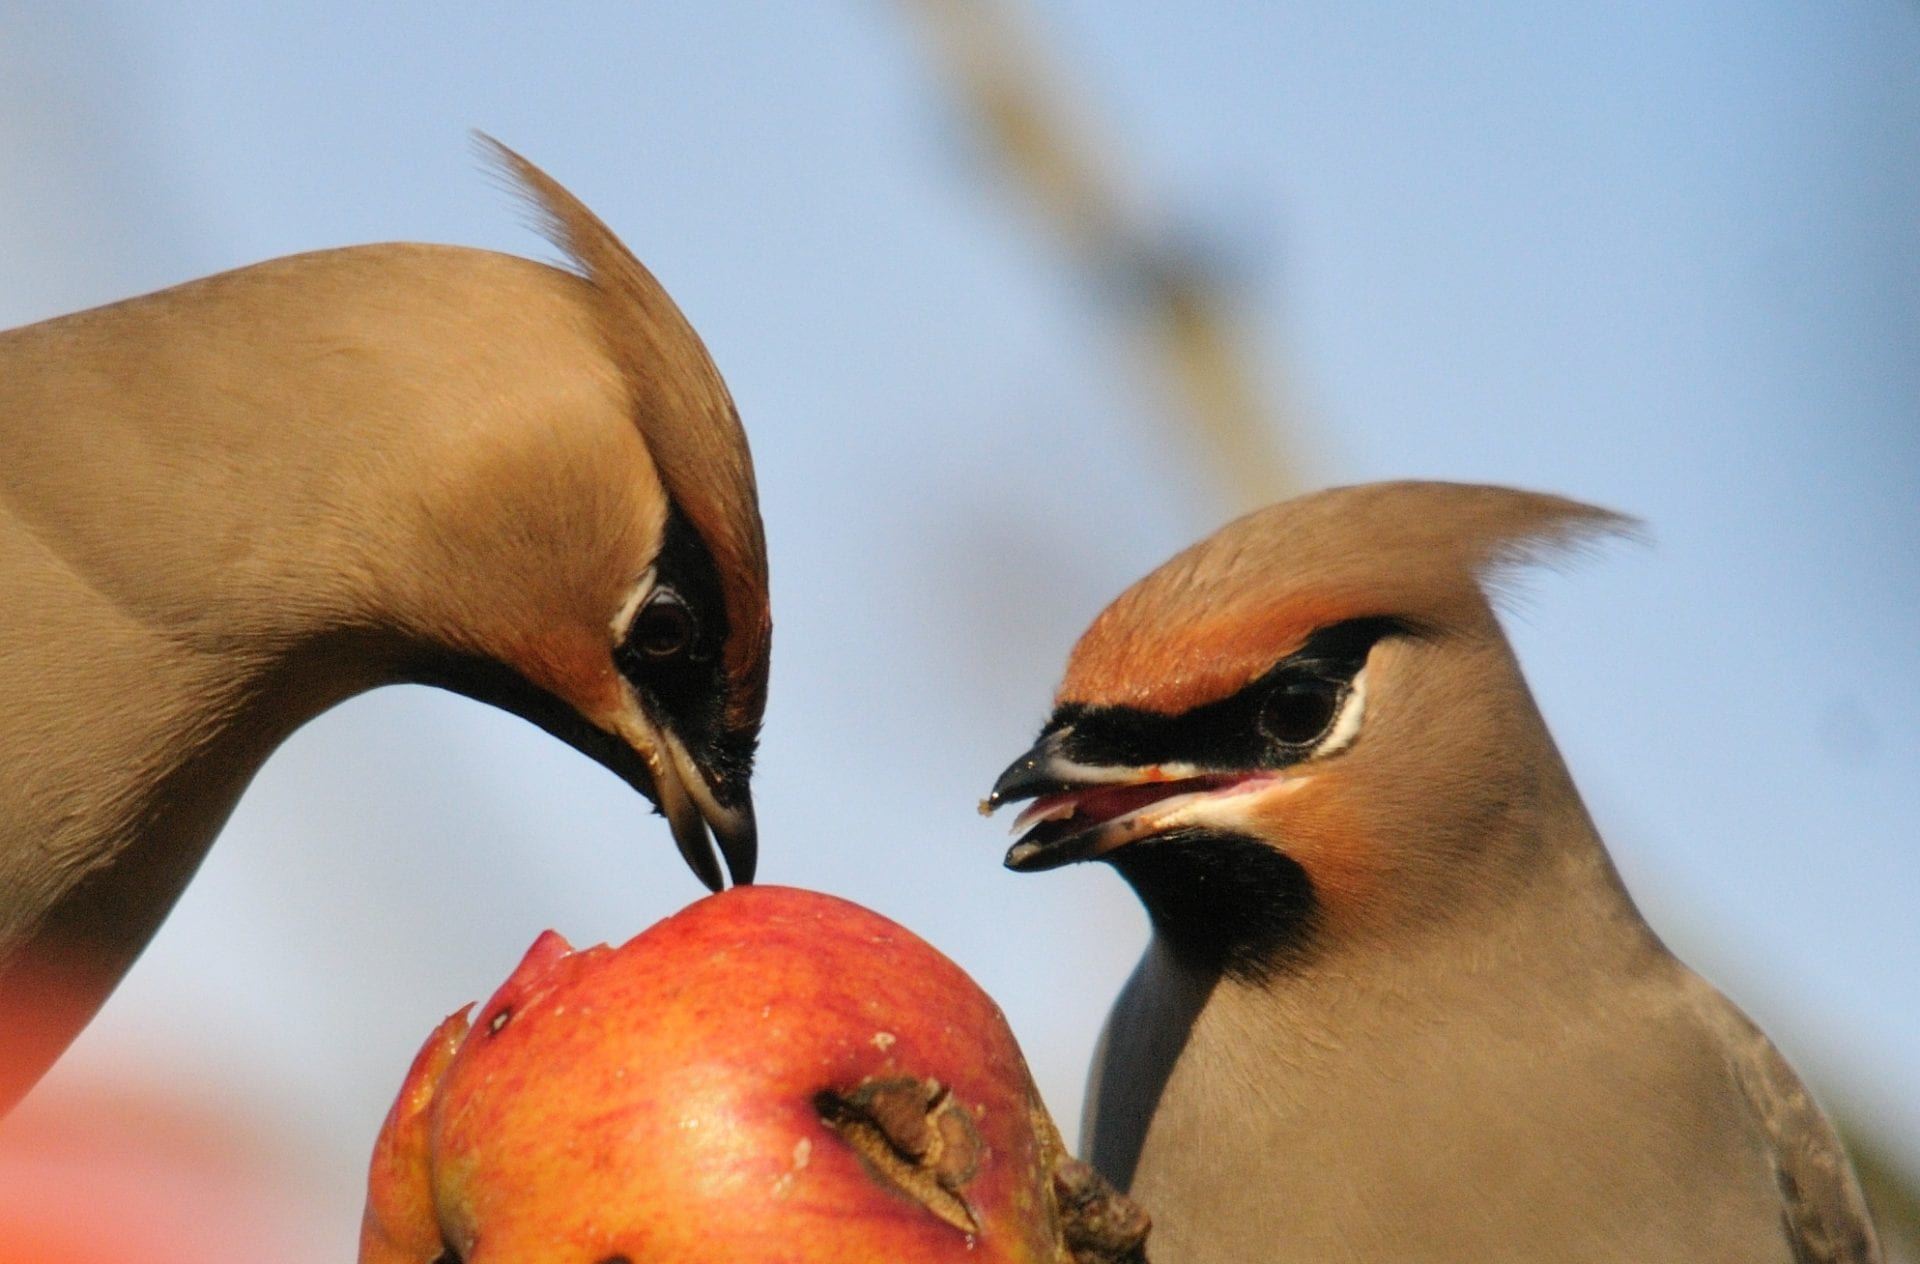 two-waxwings-close-up-feeding-on-apple